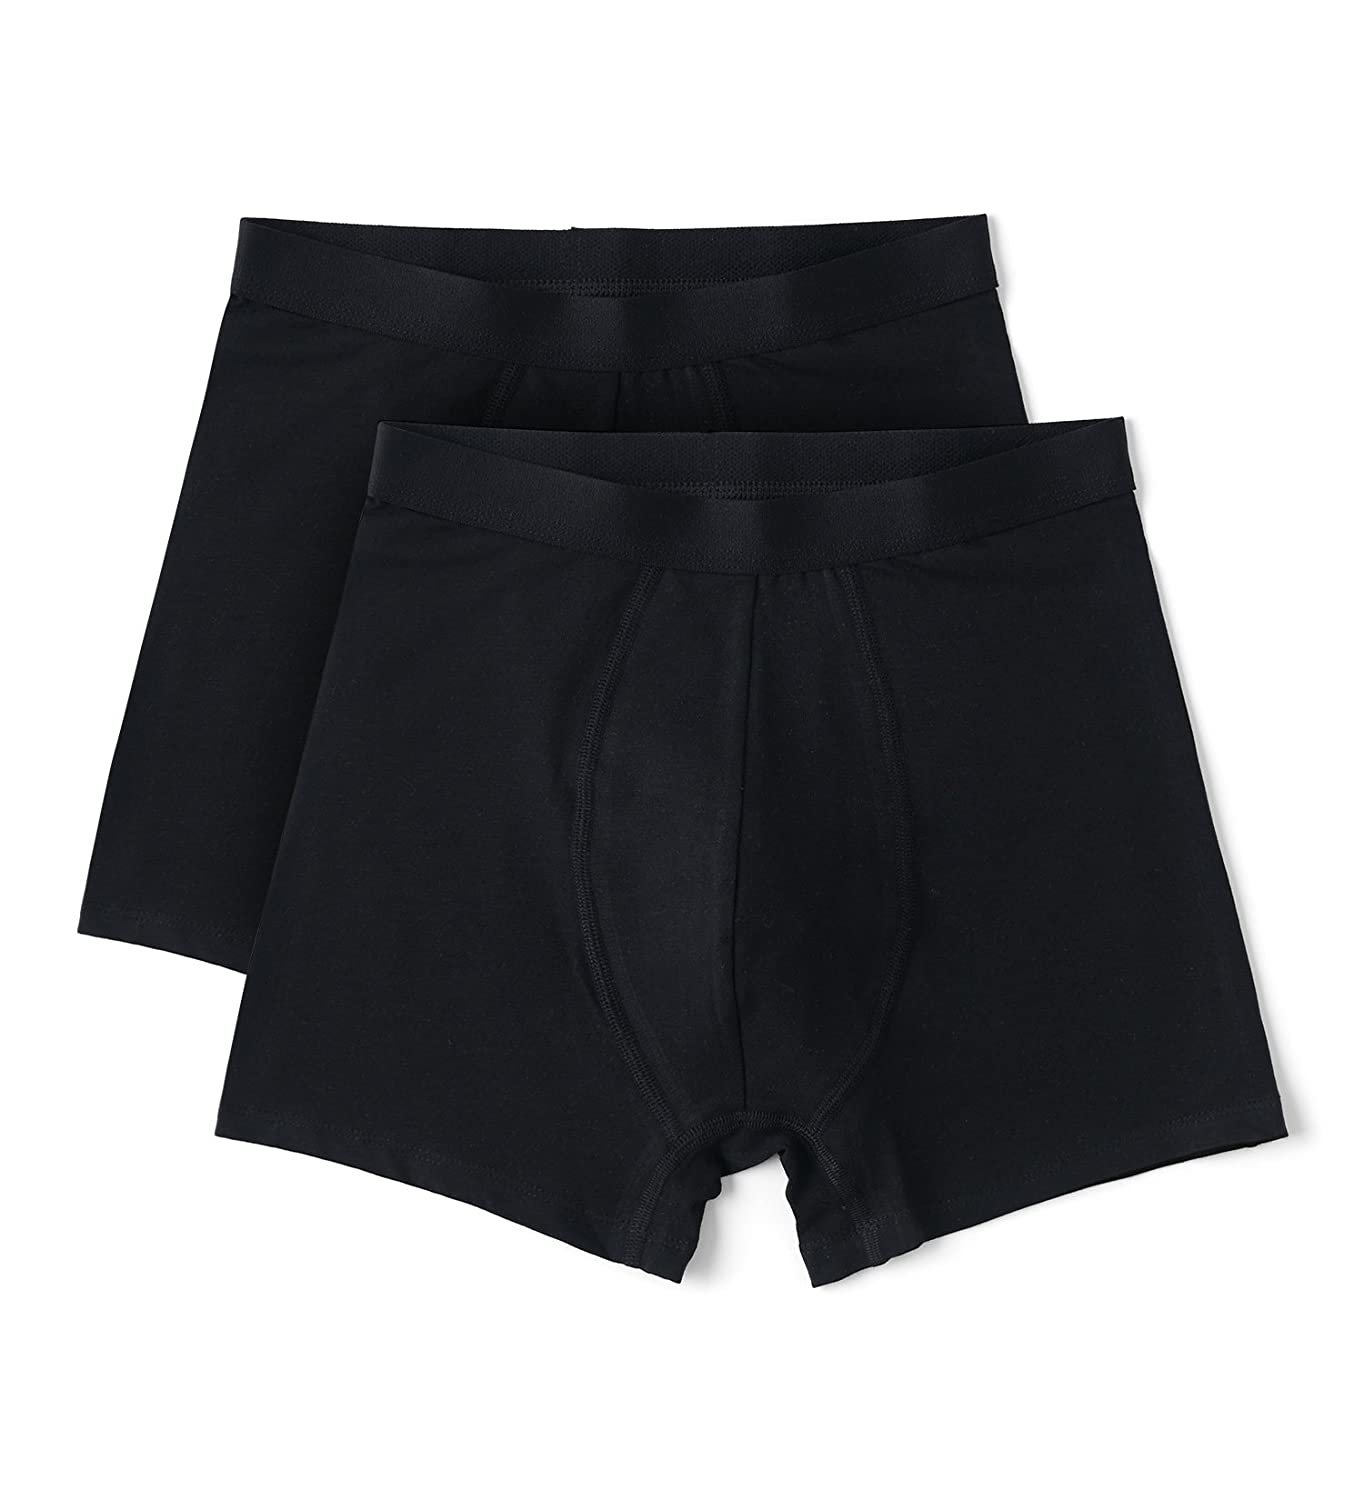 832ab938ce0c Men's 2-pack Black Organic Cotton Boxer Briefs (Black, Medium):  Amazon.co.uk: Clothing